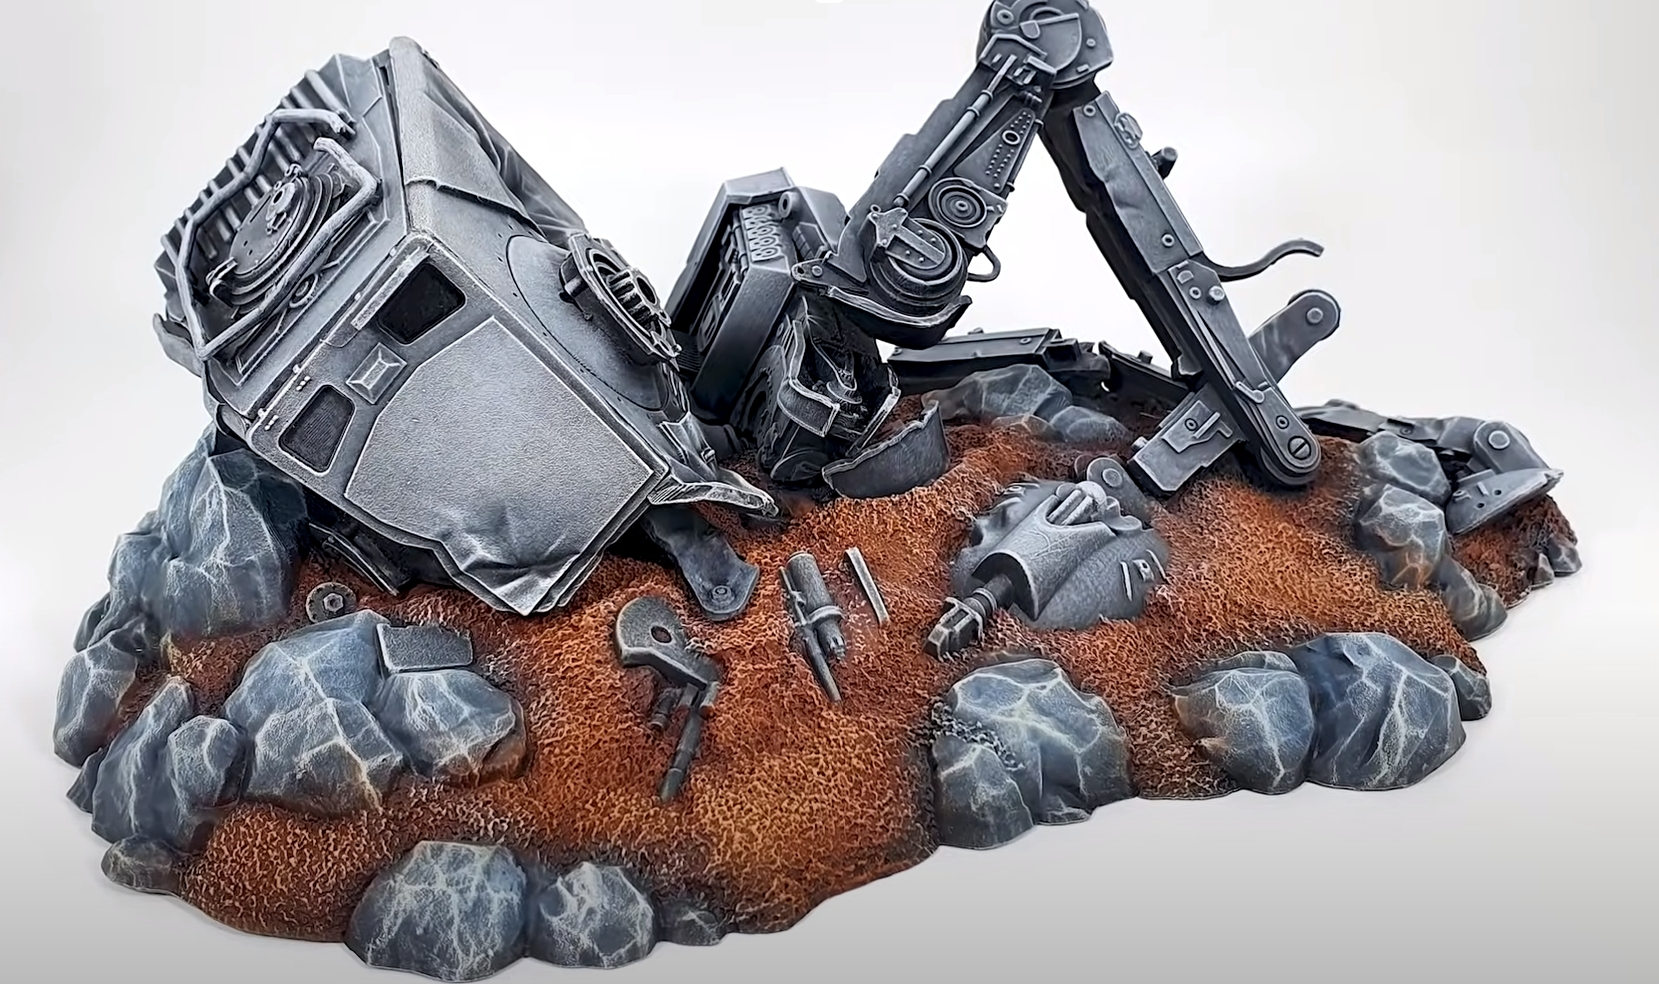 Dry Brushing For Miniatures And Models